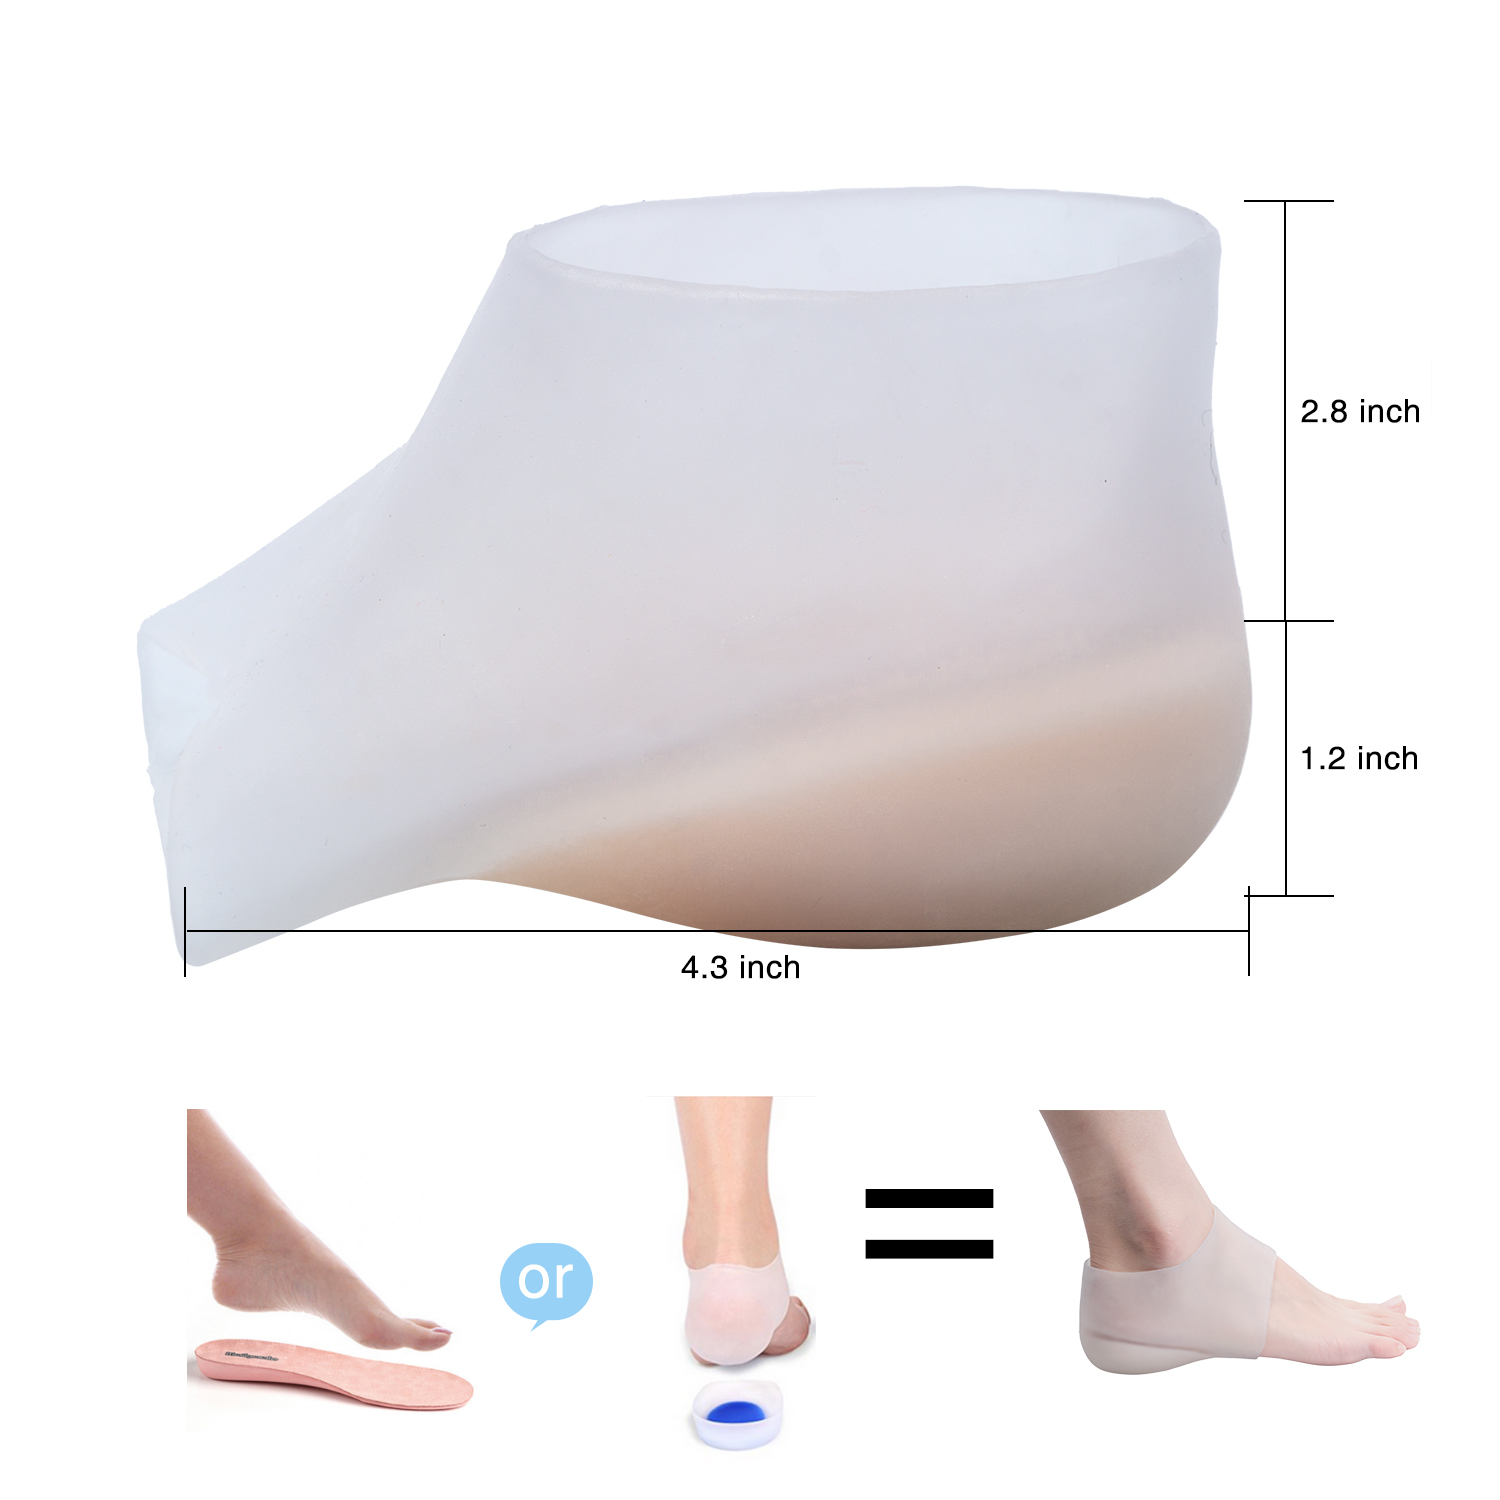 1.2inch Height Increase Silicone Half Insole Insert Invisible Heightening Pad  Anti-crack Foot Heel Protector Unisex Feet Care